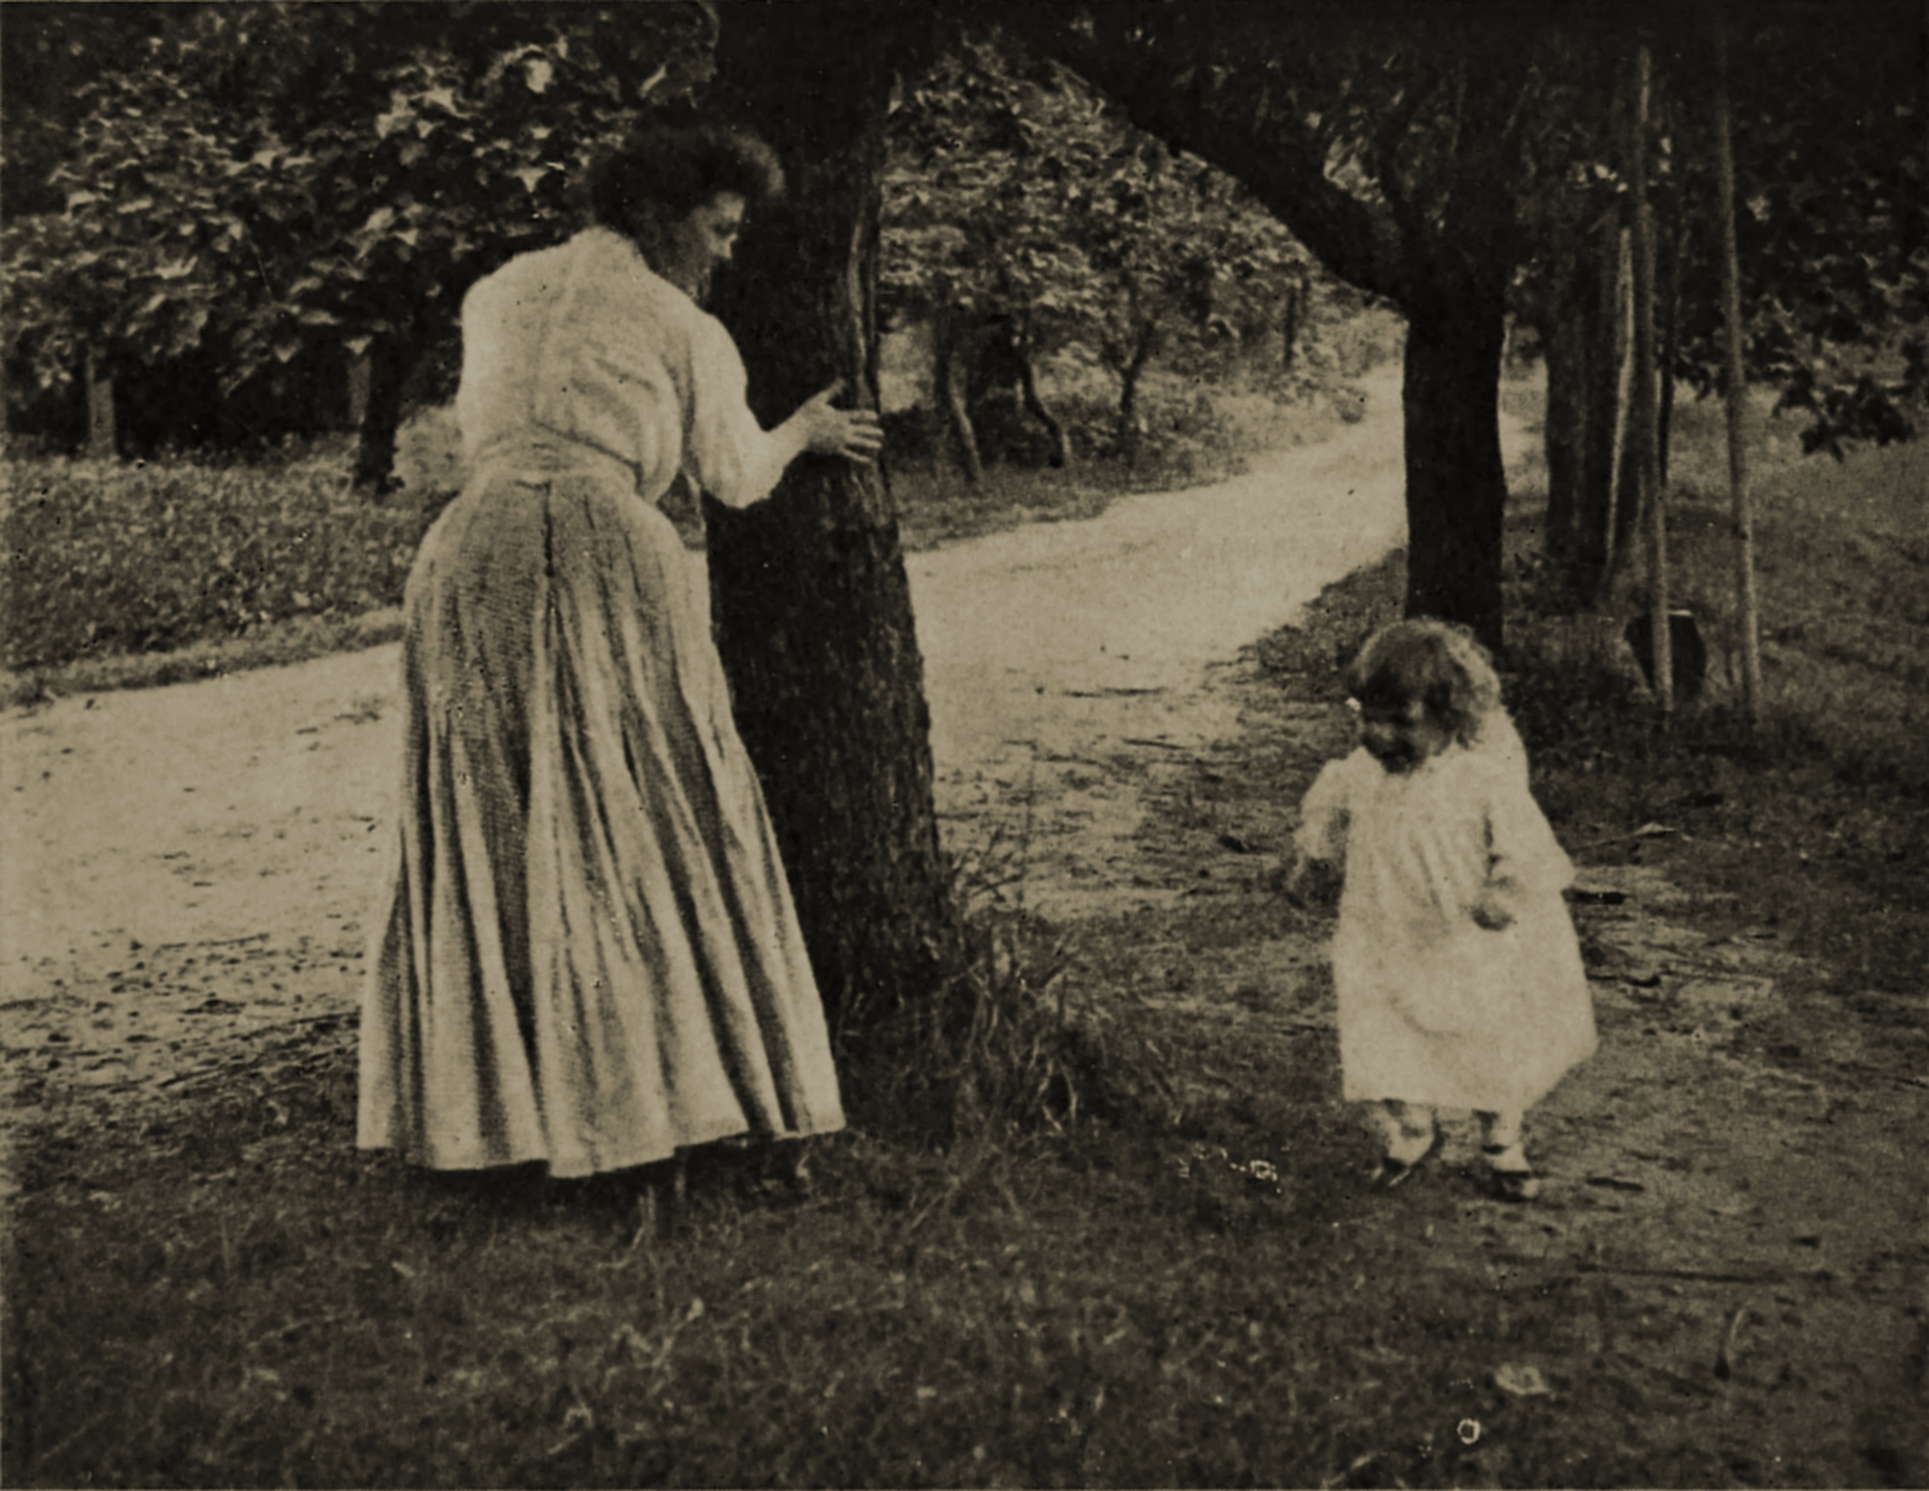 Hide and seek by C. H. Claudy about 1908